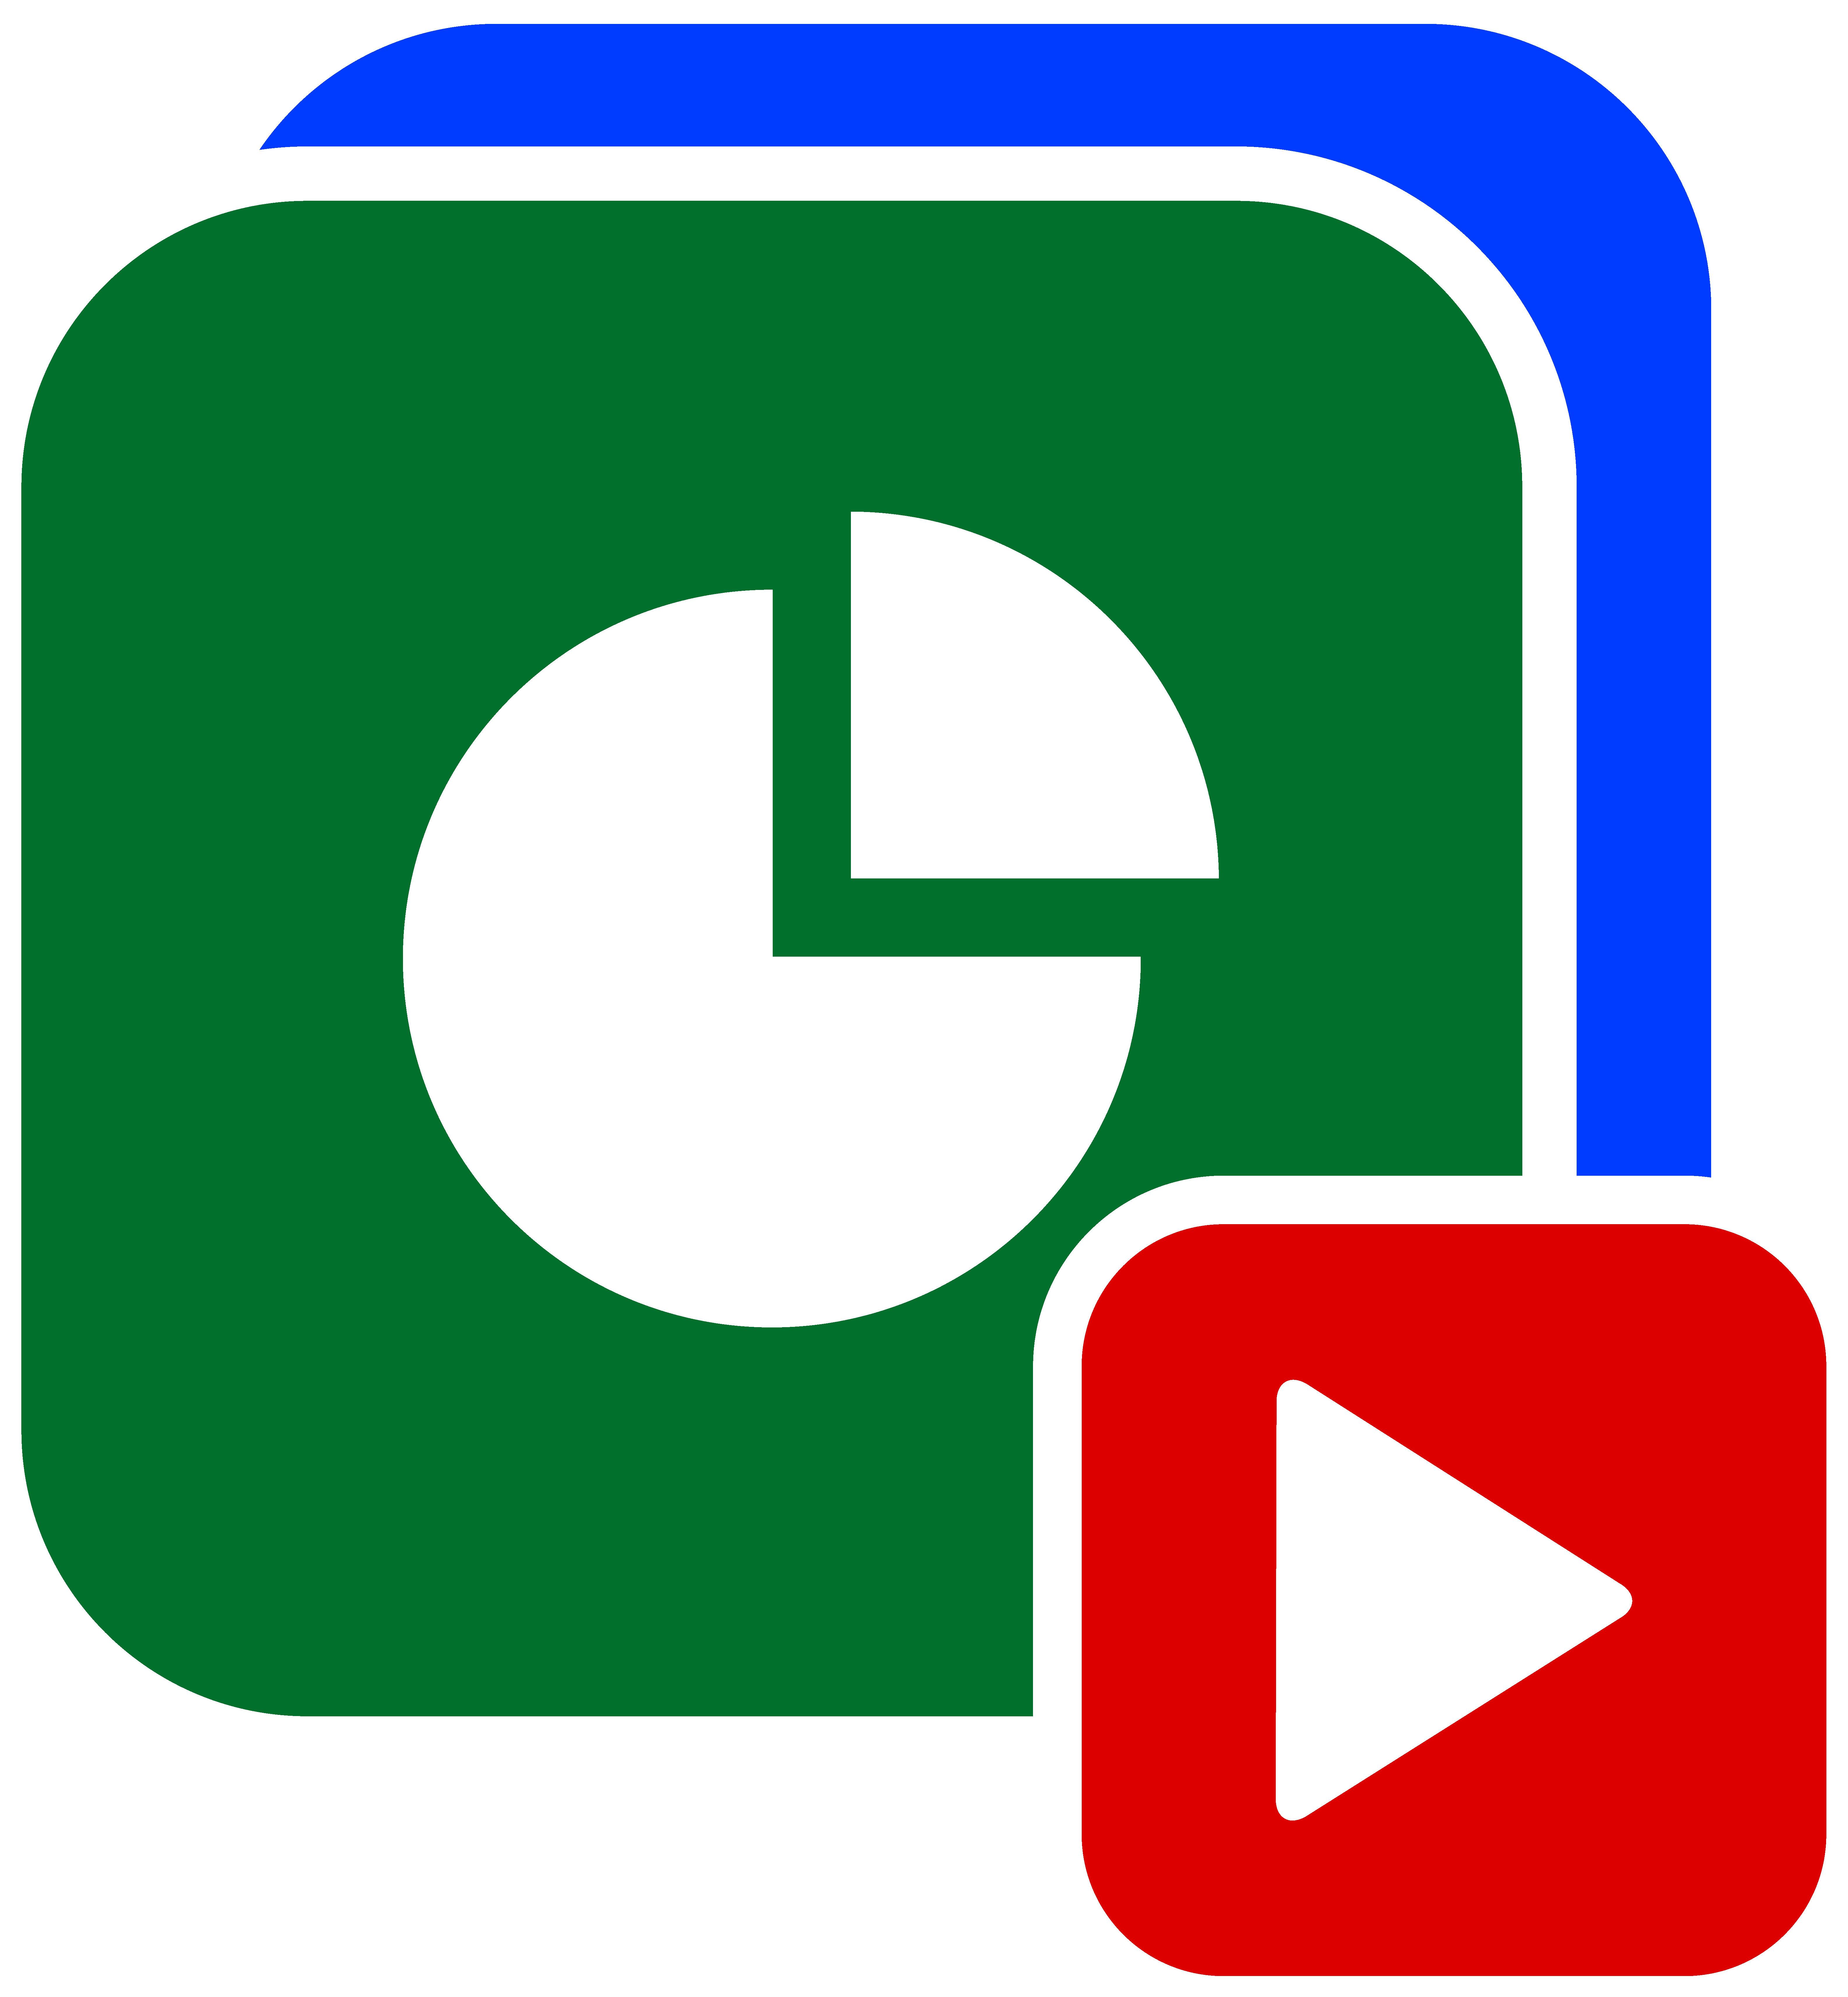 Video production services green, red, and blue presentation icon